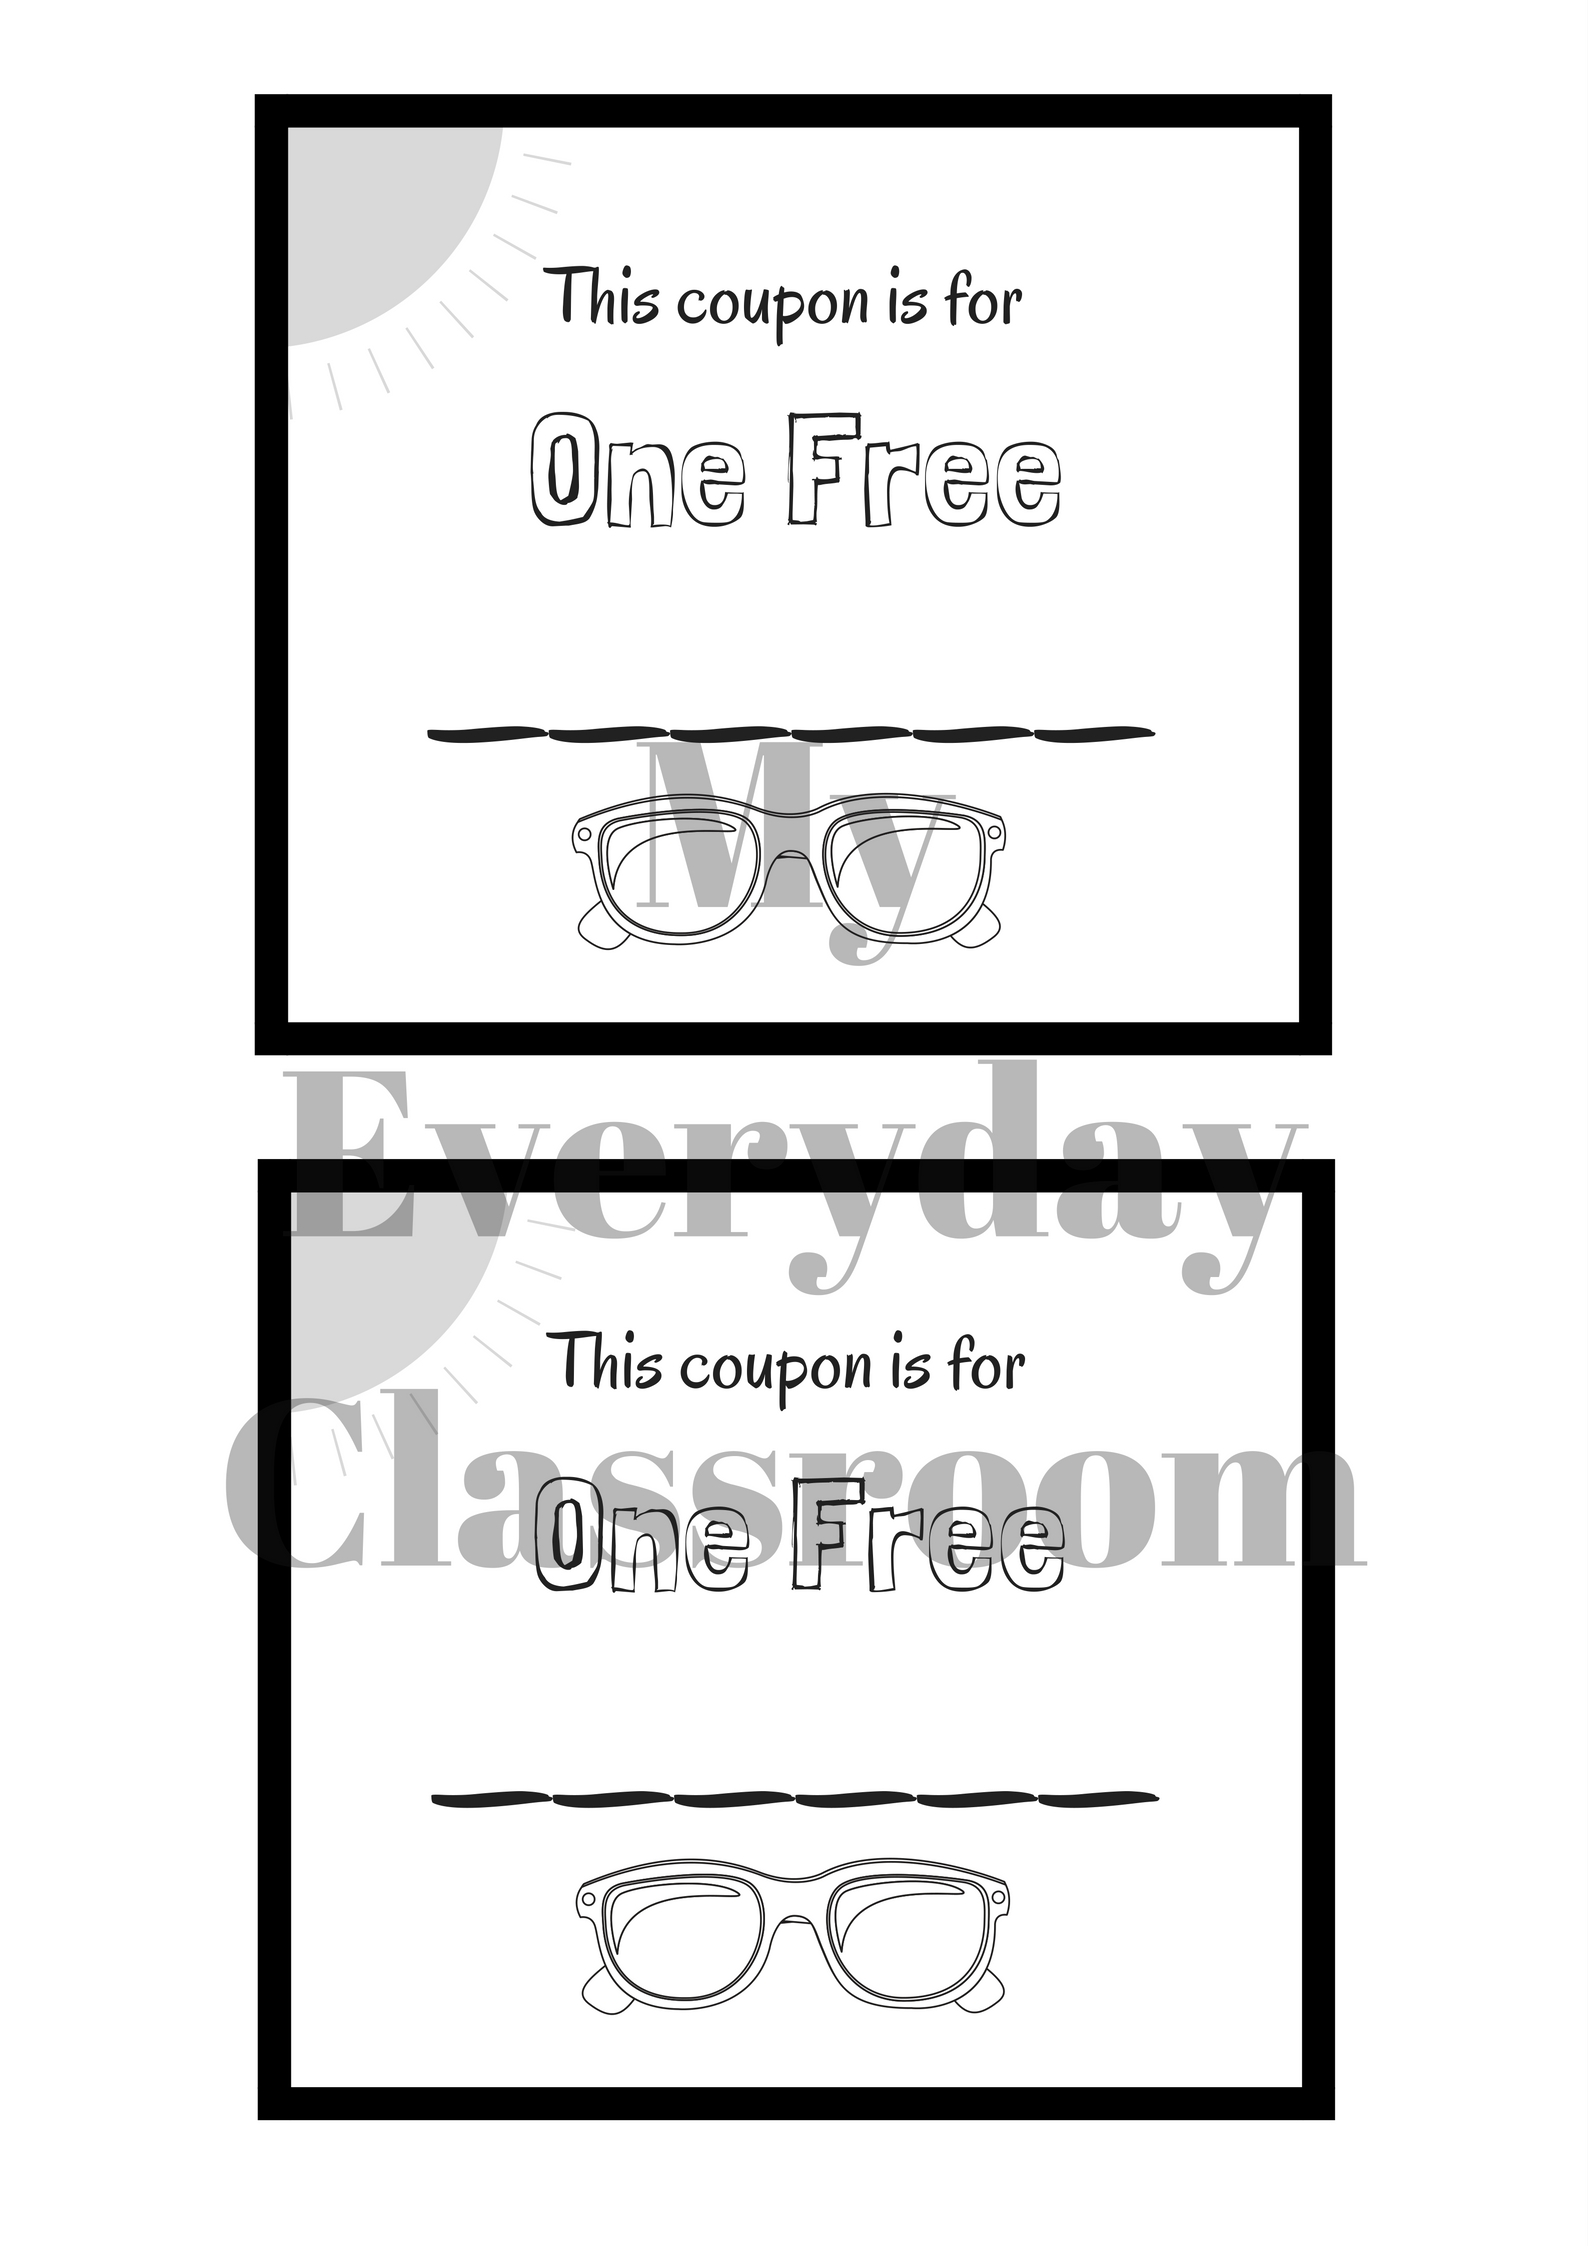 This is an adorable Father's Day coupon booklet activity. Students will get to create and design coupons to give to their dads. This is a great way to encourage kids to think about the ways they can show appreciation to their fathers, and will promote some at-home action for Father's Day.